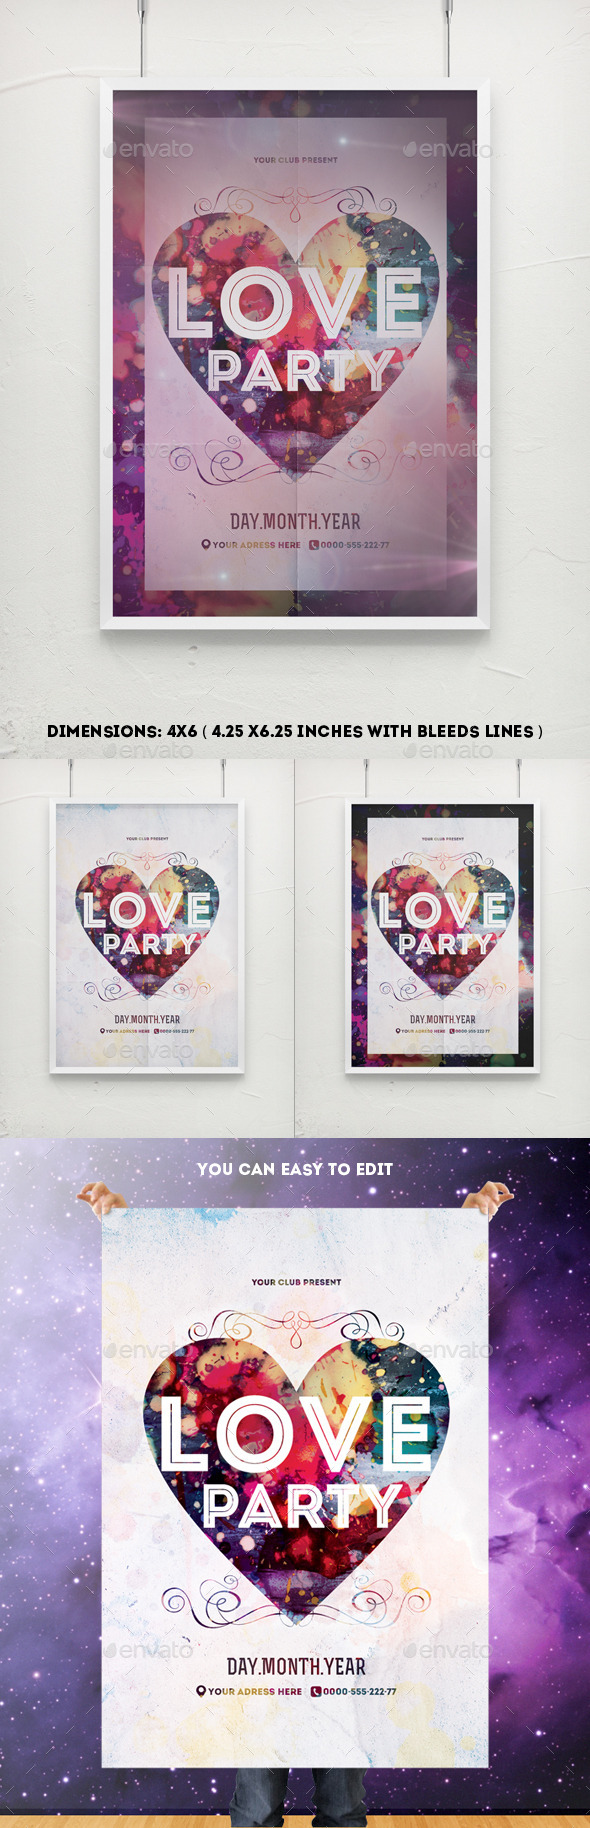 GraphicRiver Bright Love Party Poster Template 10033614